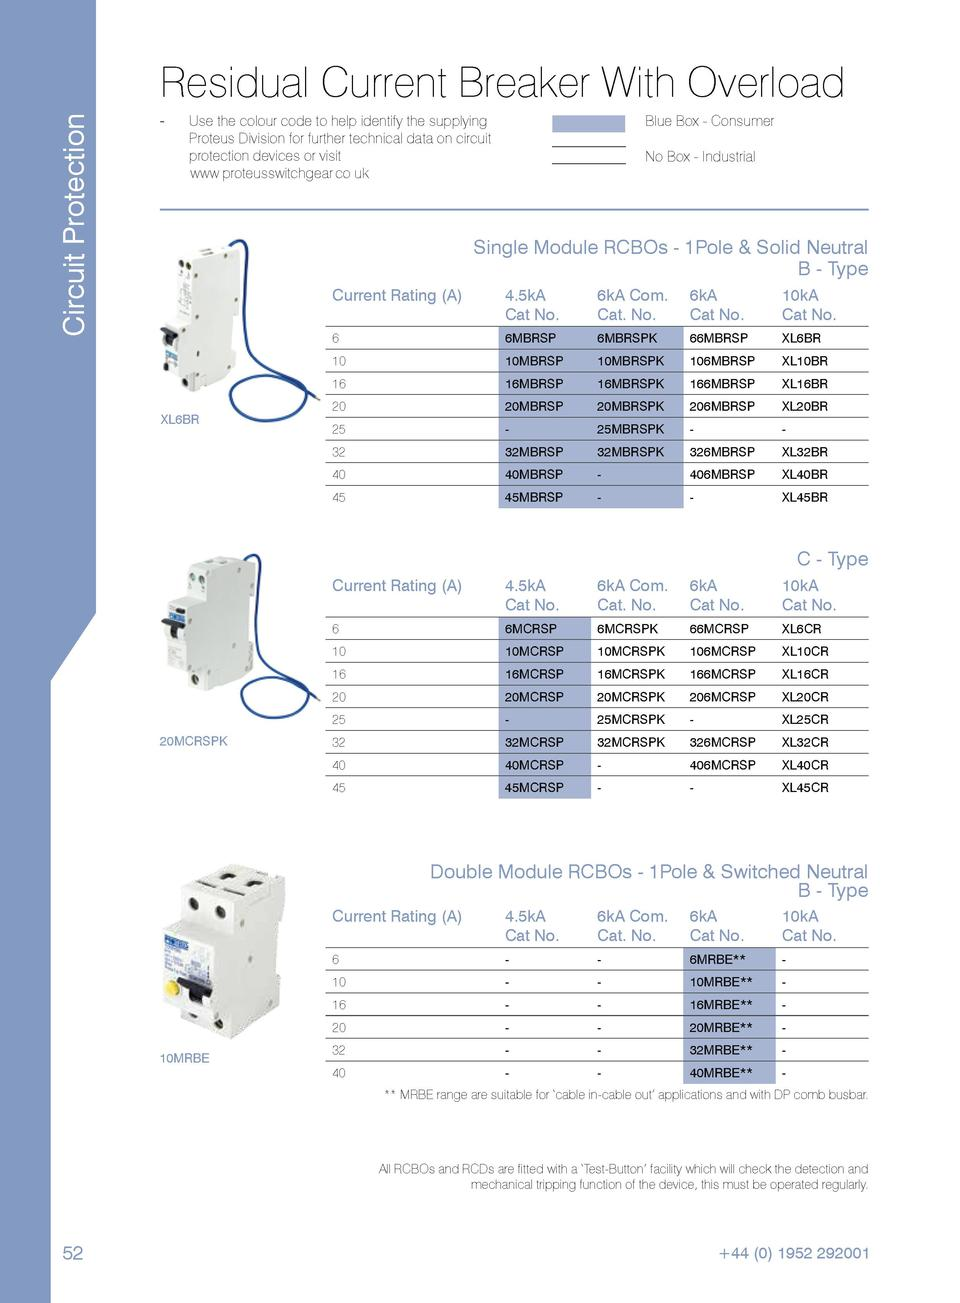 Circuit Protection  Residual Current Breaker With Overload --  Use the colour code to help identify the supplying Proteus ...